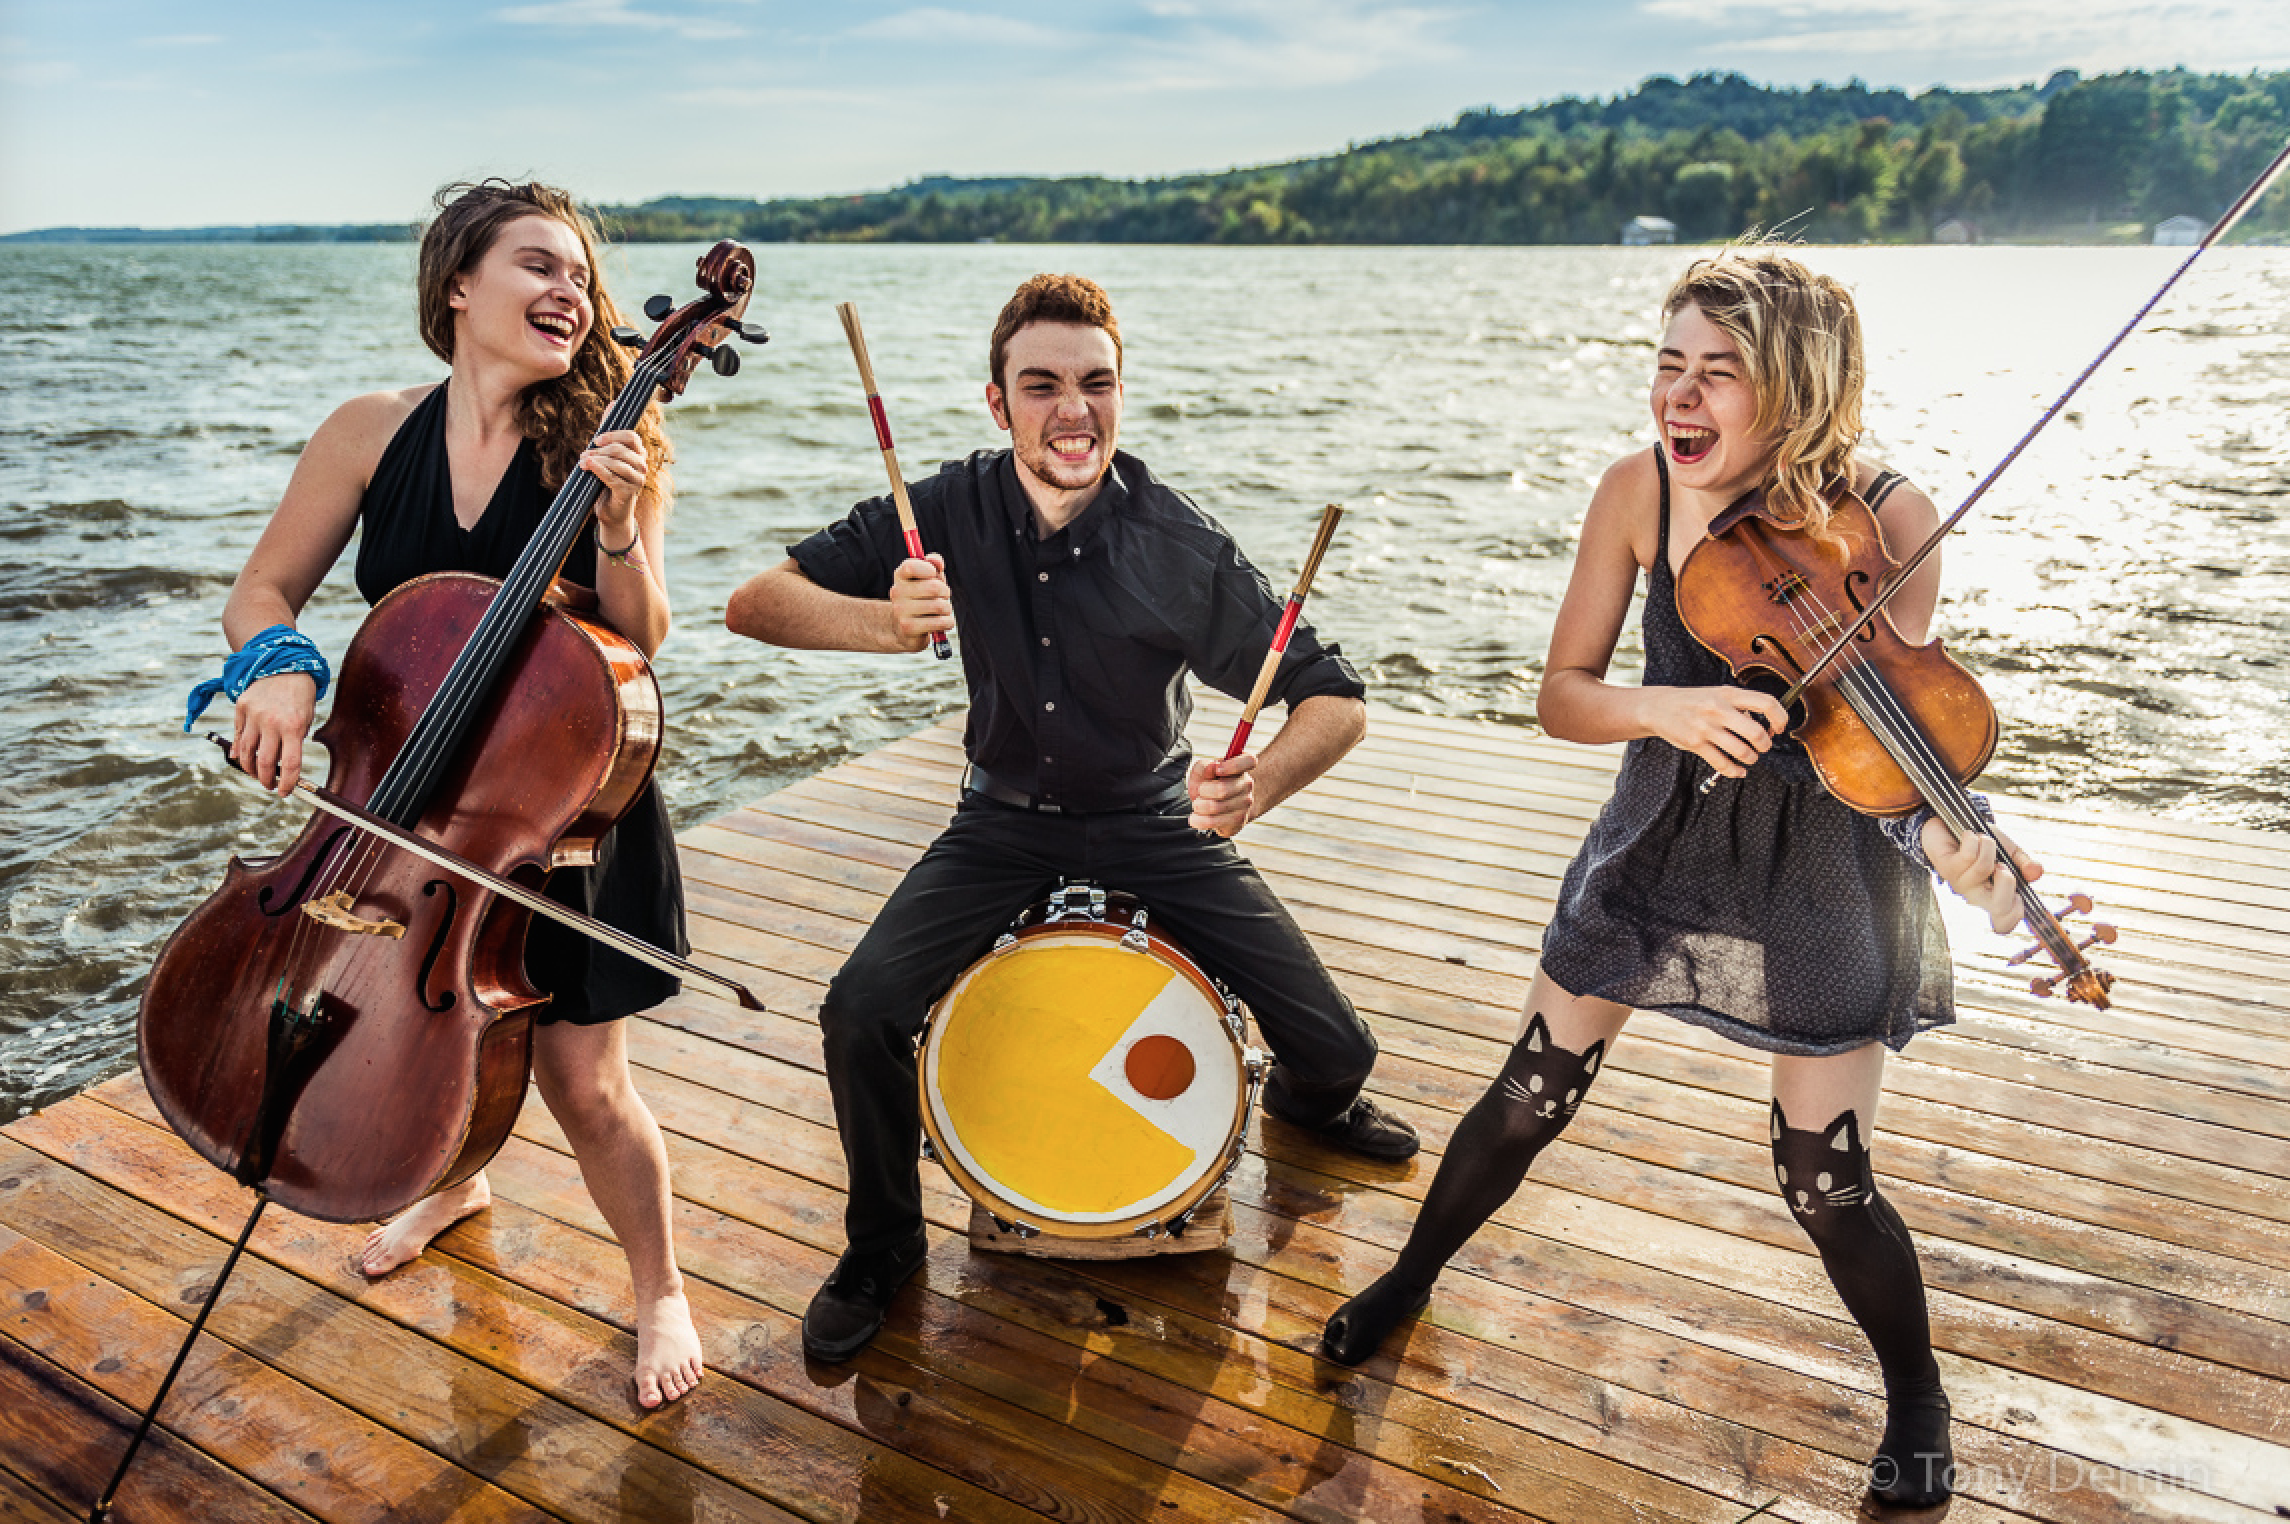 3x3: The Accidentals on Musical Obsessions, Non-Designer Jeans, and a Shared Love of Amy Poehler